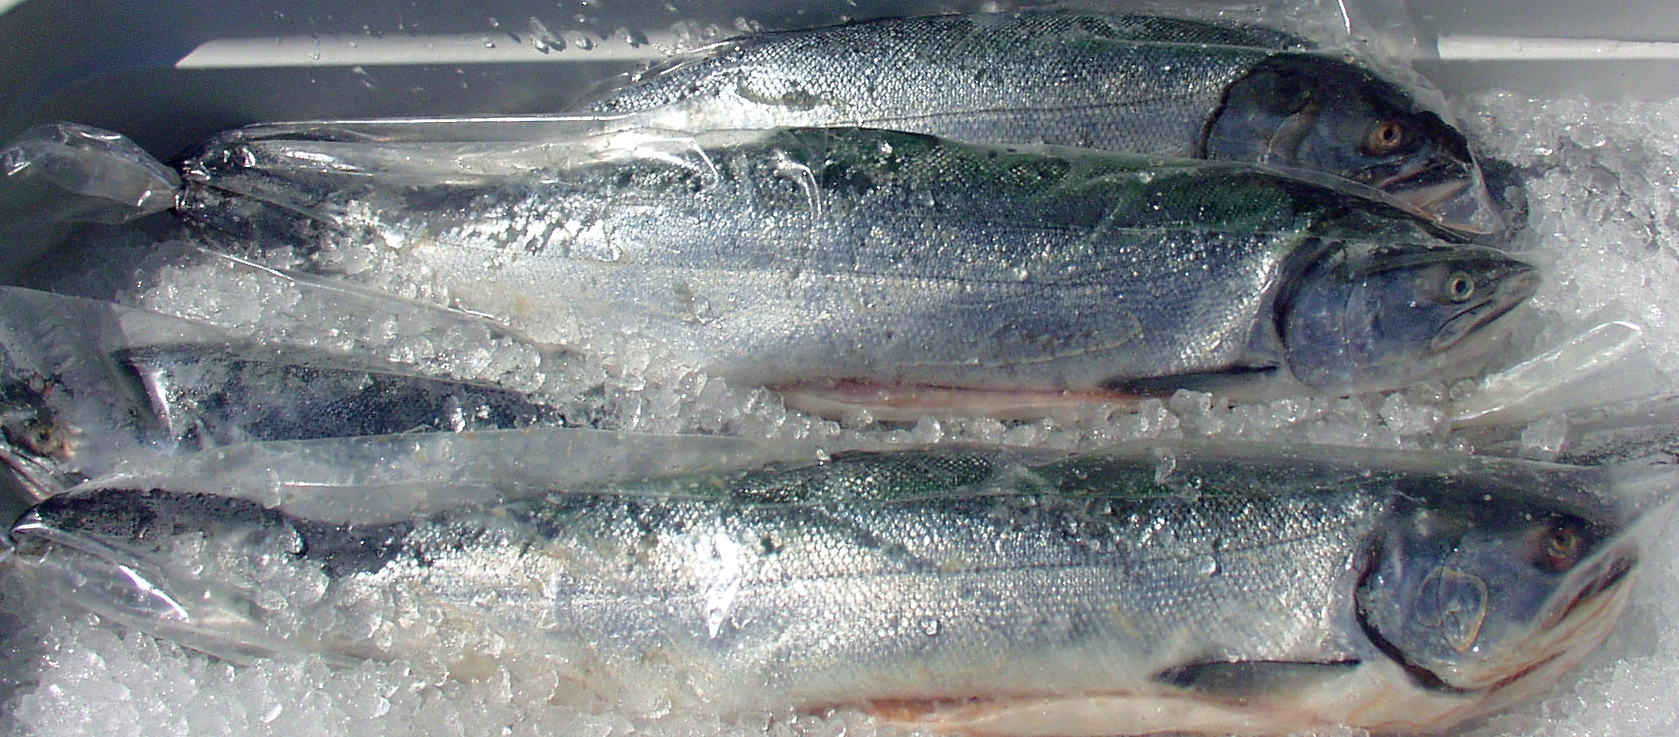 Wilson Fish's Washington-coastal coho salmon. Photo copyright 2009 by Zachary D. Lyons.